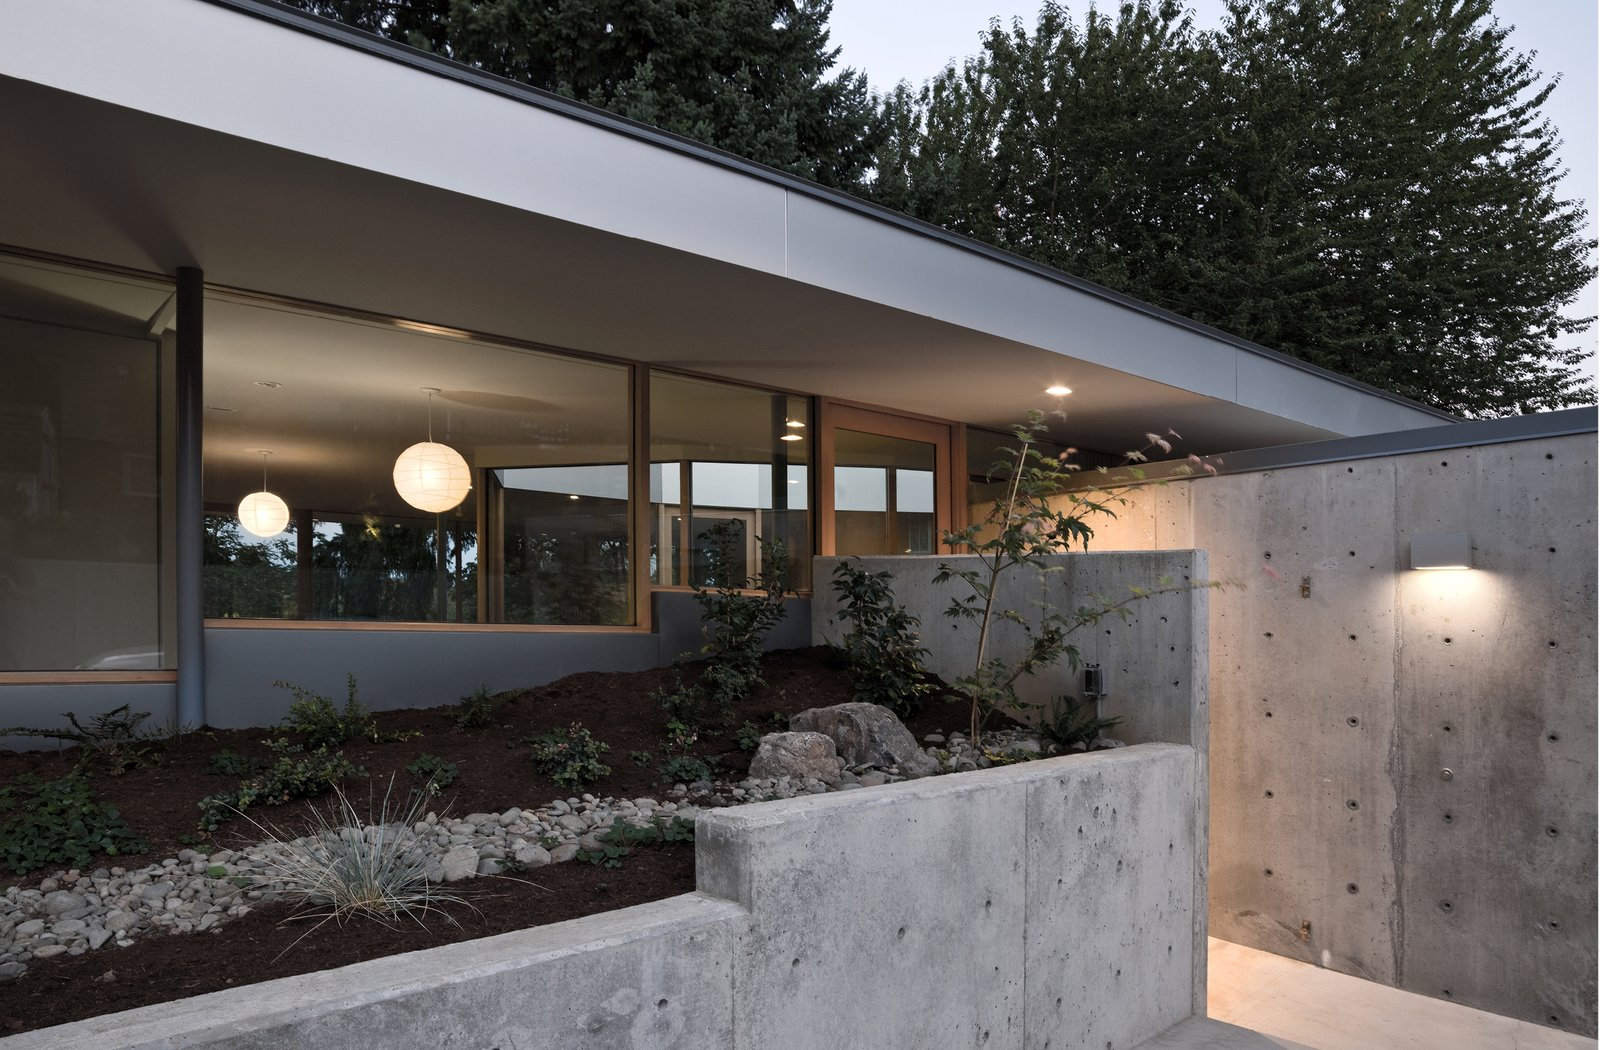 Entered through a sunken patio, the house flows in a continuous loop around two L-shaped storage cores.